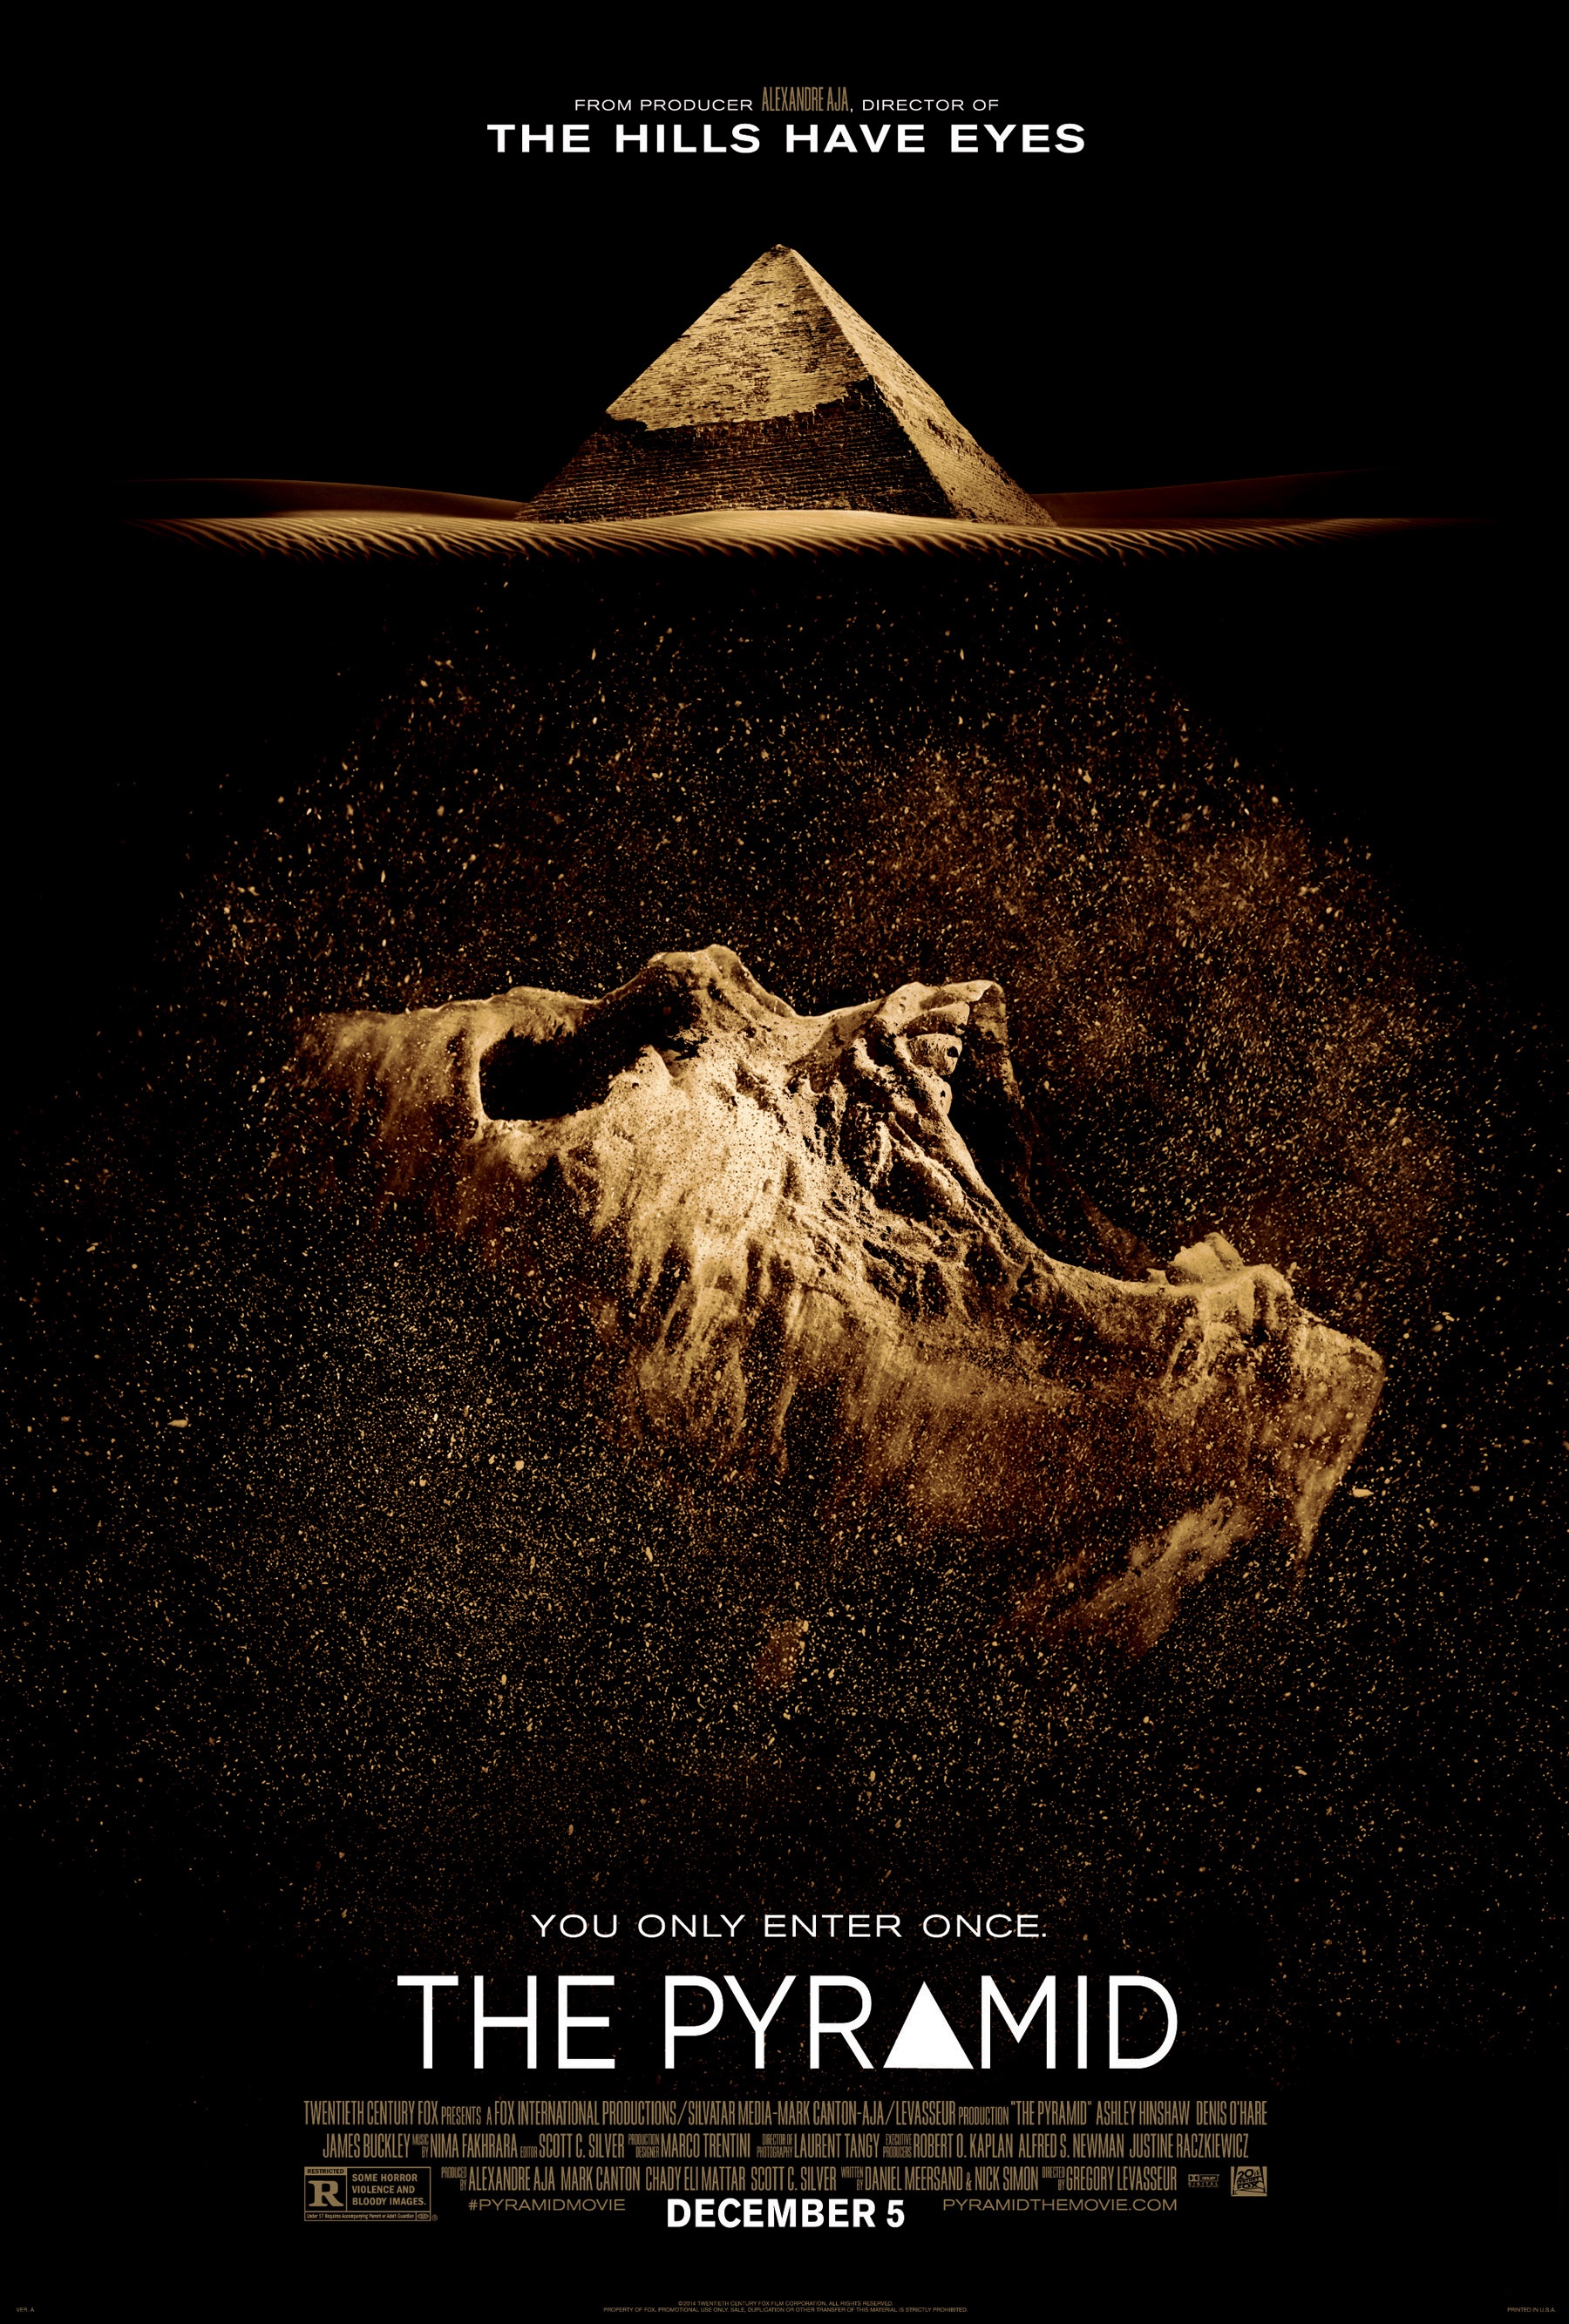 THE PYRAMID-Official Poster Banner PROMO XLG-29AGOSTO2014